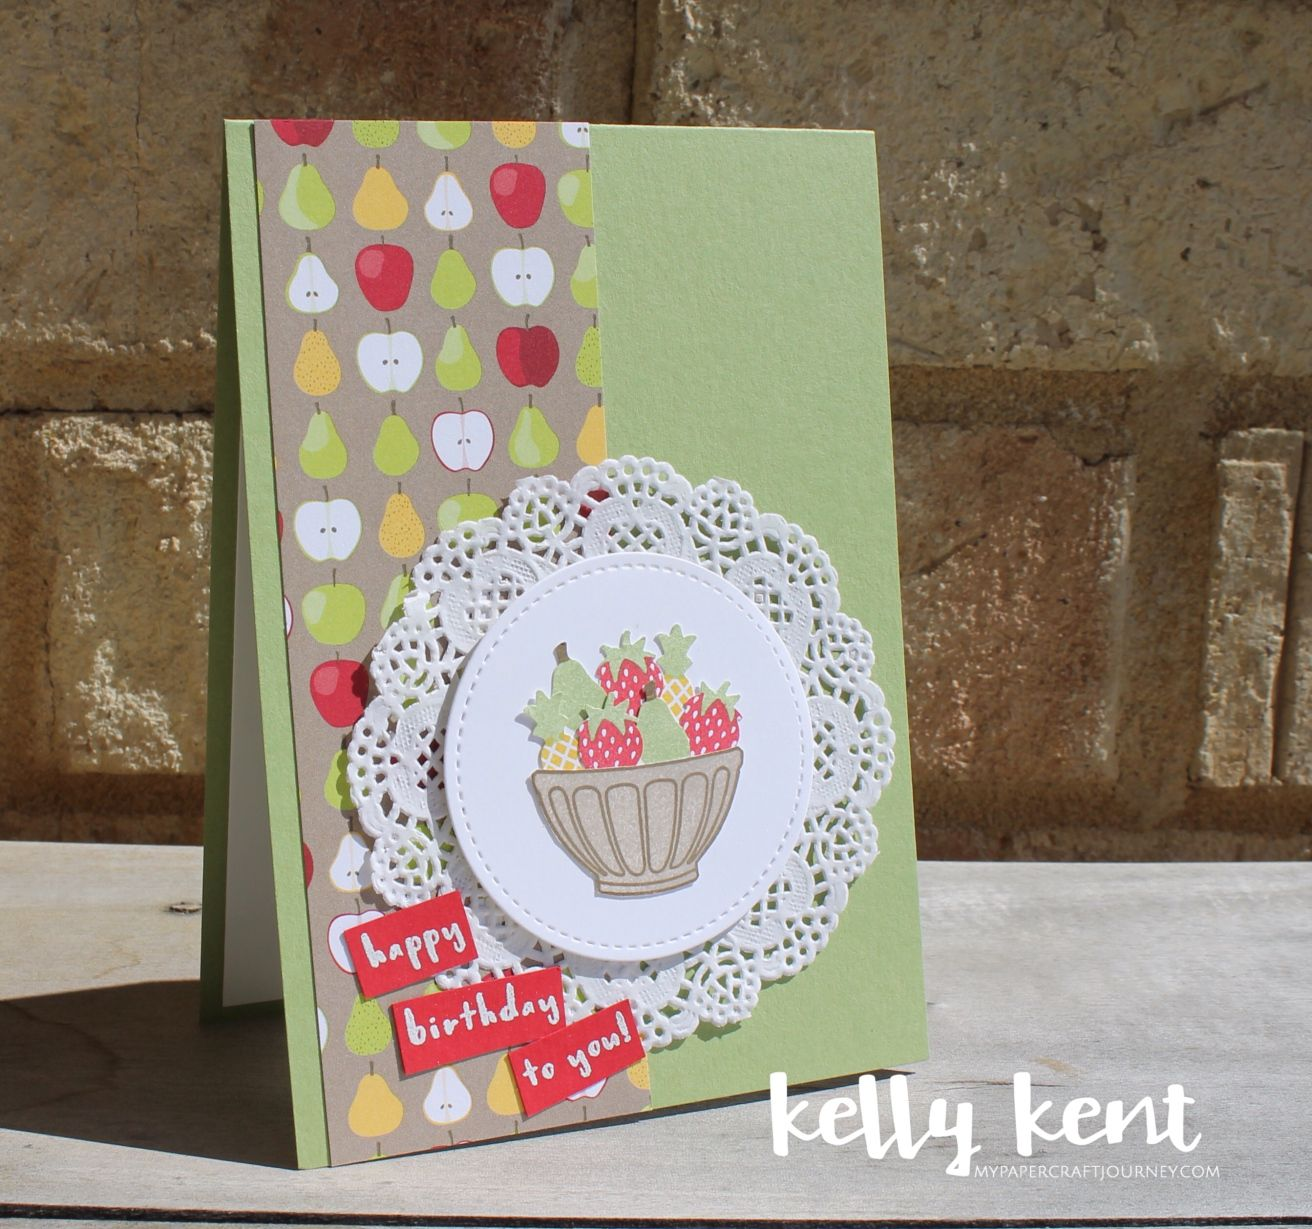 Sweet birthday wishes cards catalog and card ideas fruit basket kelly kent kristyandbryce Images